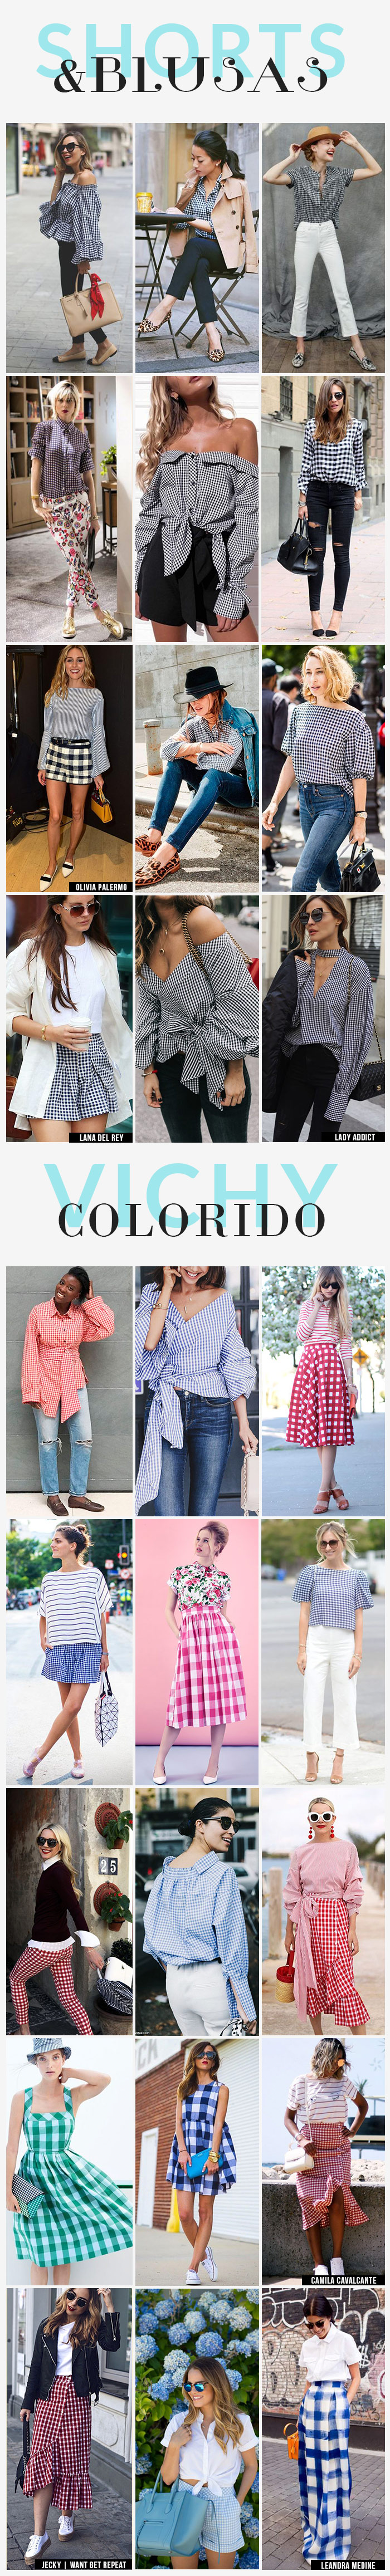 estampa xadrez vichy shorts, blusas e colorida